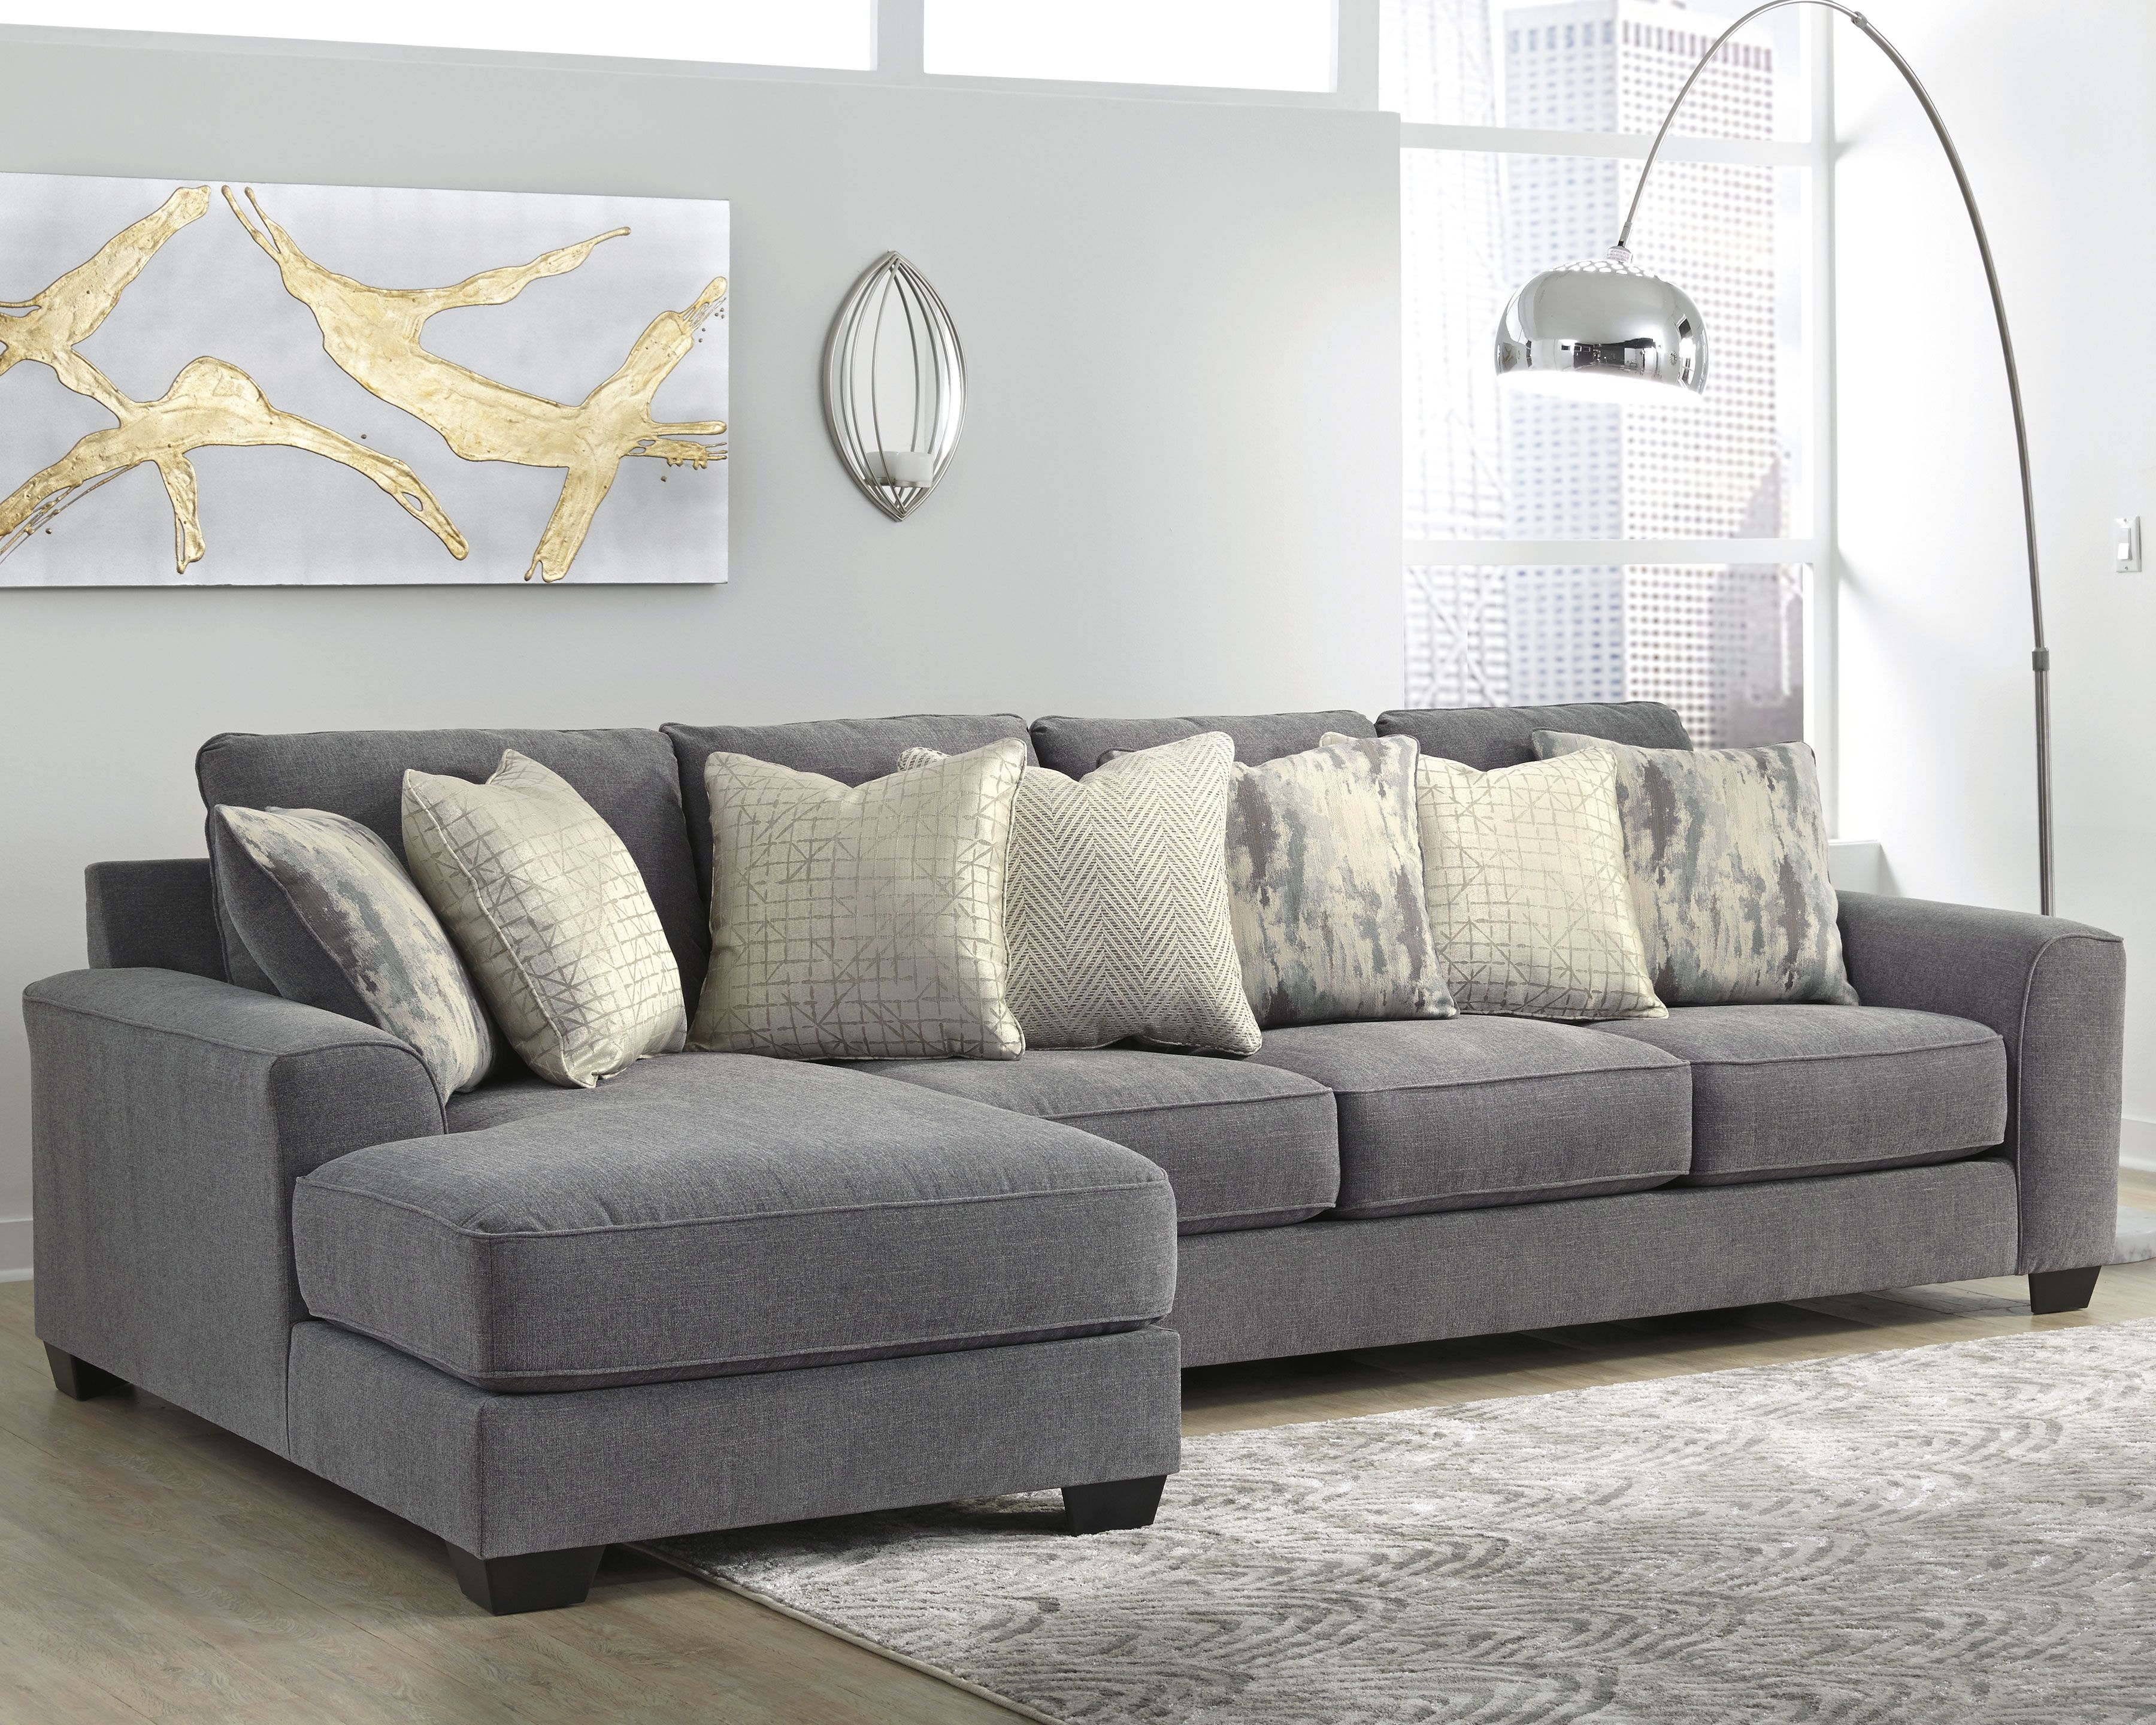 Castano 2 Piece Sectional With Chaise Jewel In 2020